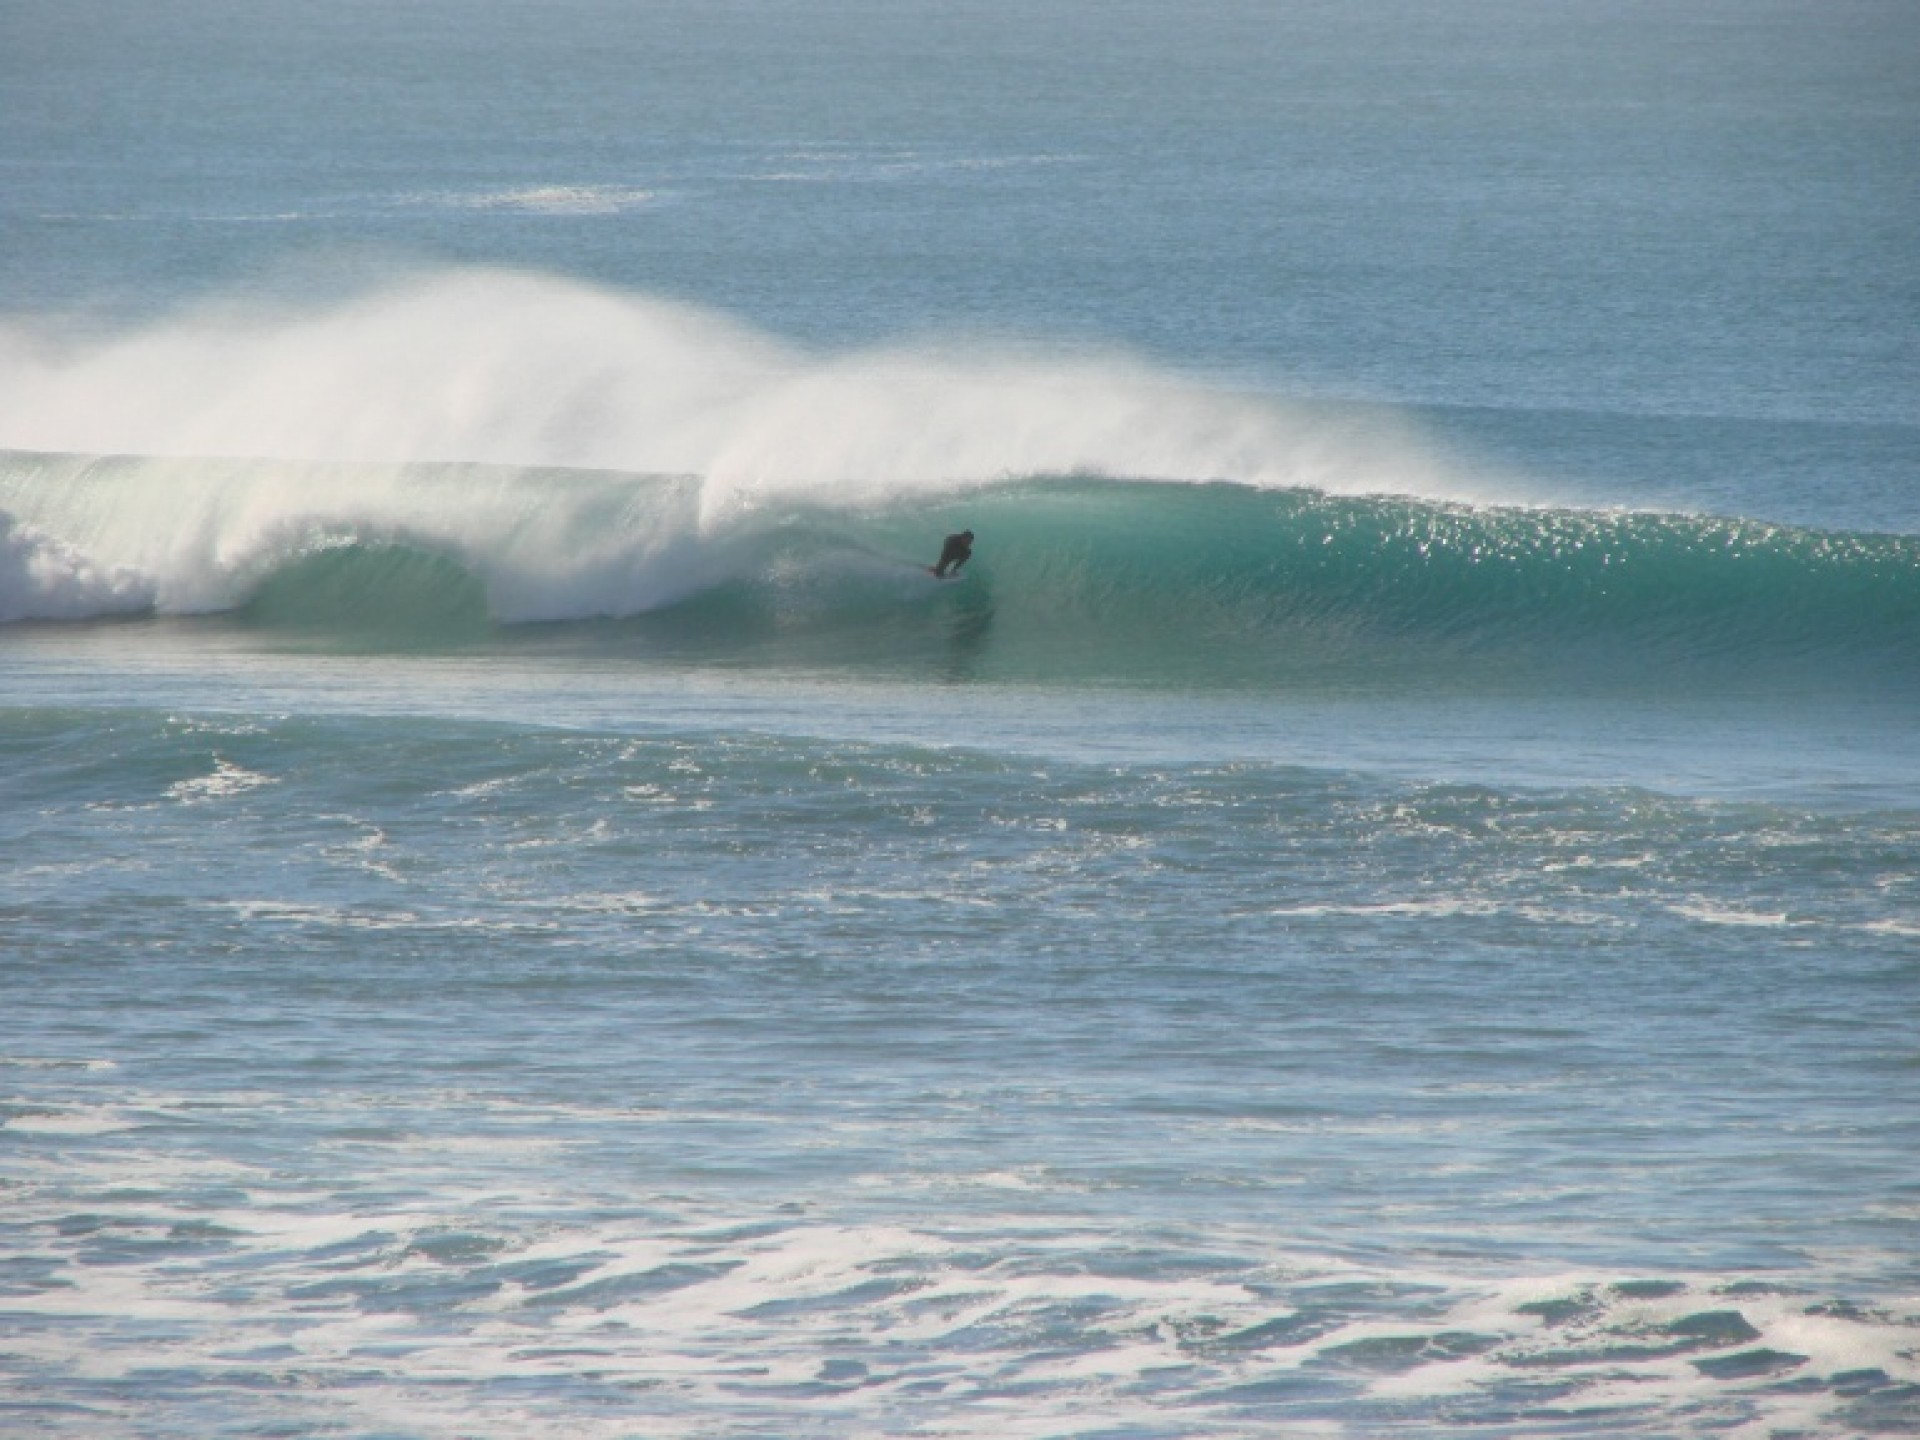 Petermate's photo of Gizzy Pipe (Gisborne)